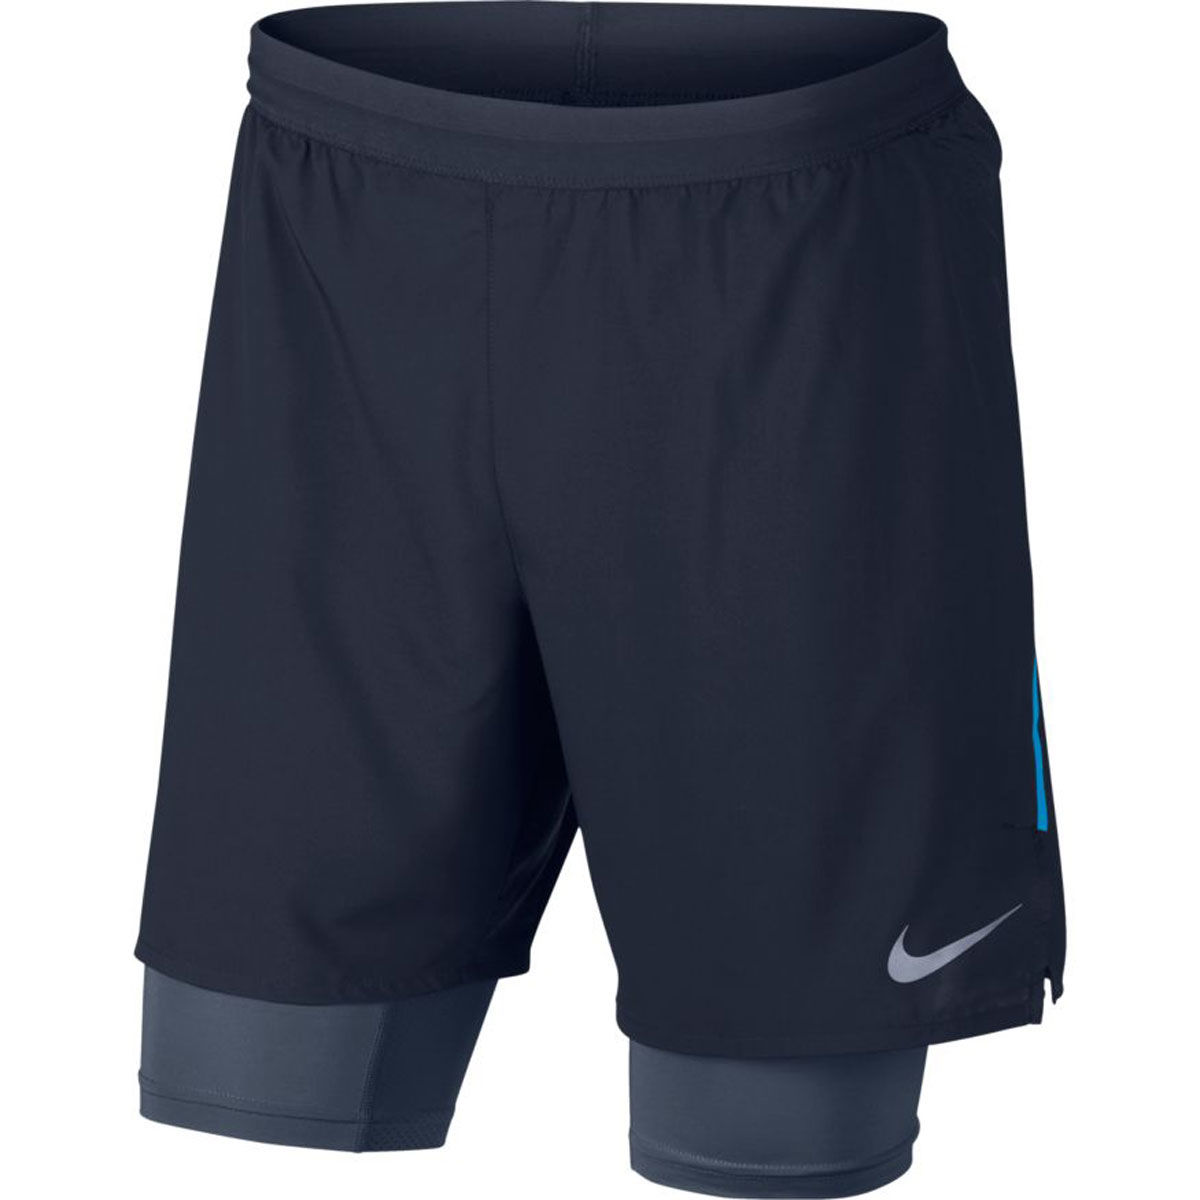 Nike Flex Stride 2-in-1 Mens Running Short